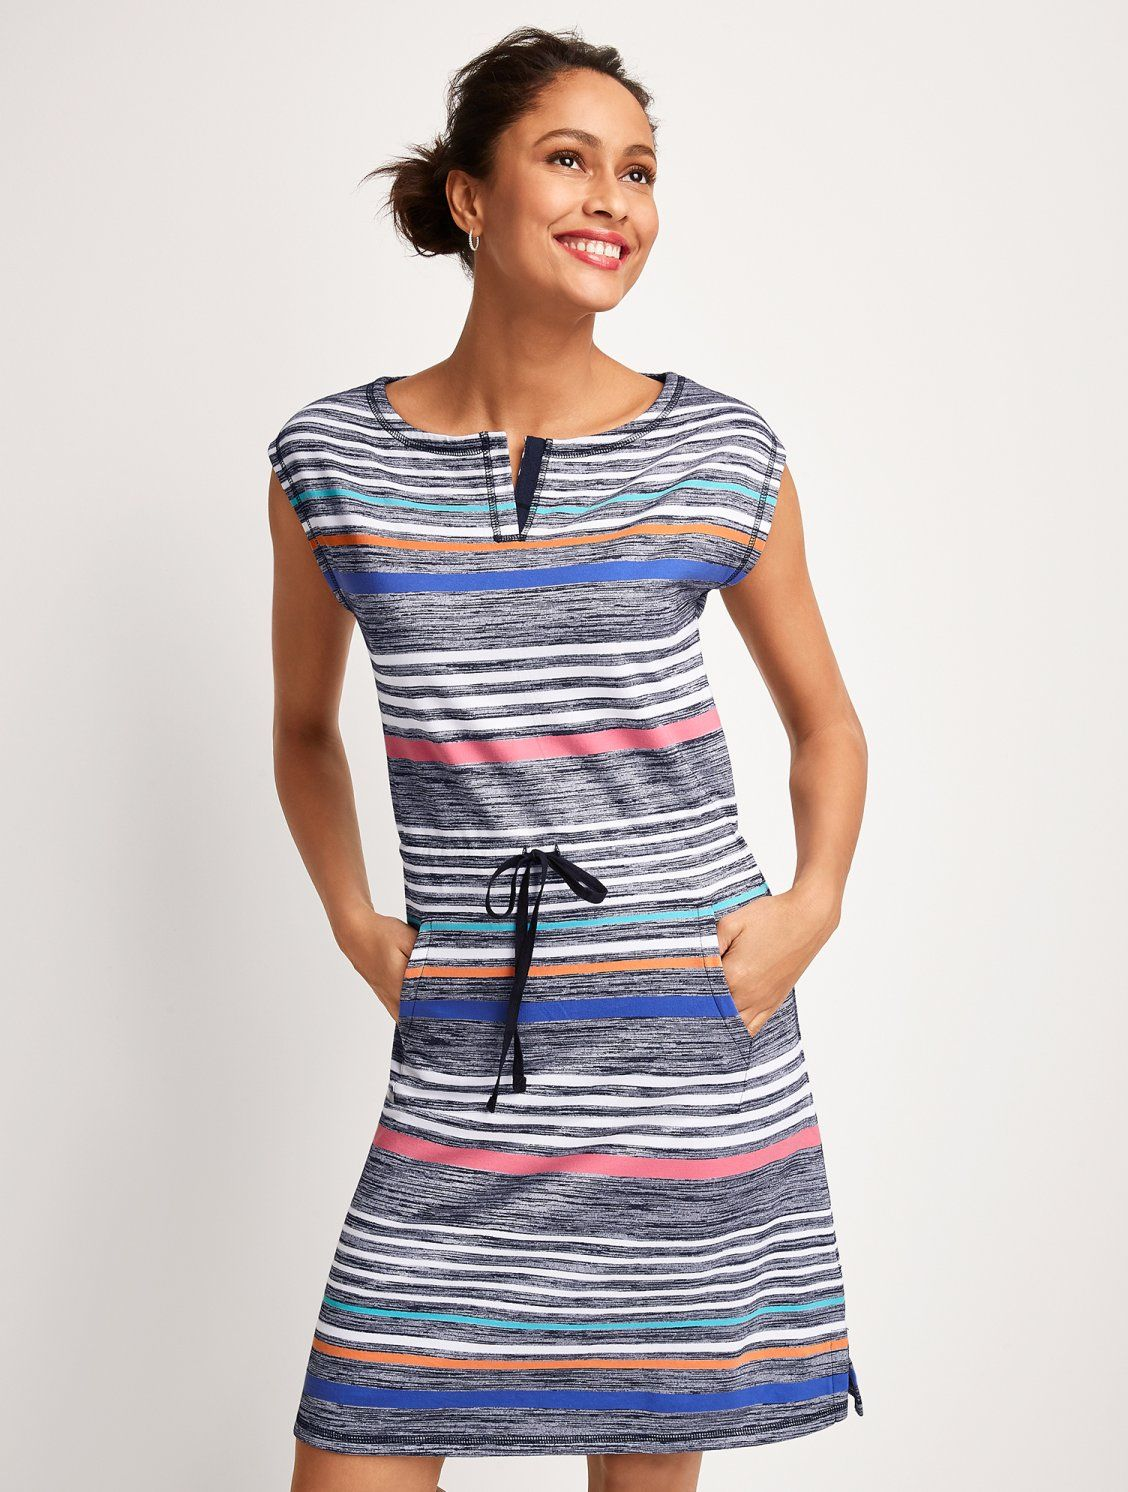 It S Hard Not To Be Happy When Wearing Such A Cheerful Comfy Shift Dress Vibrant Stripes Add Dimension Striped Shift Dress Striped Casual Dresses Shift Dress [ 1492 x 1128 Pixel ]